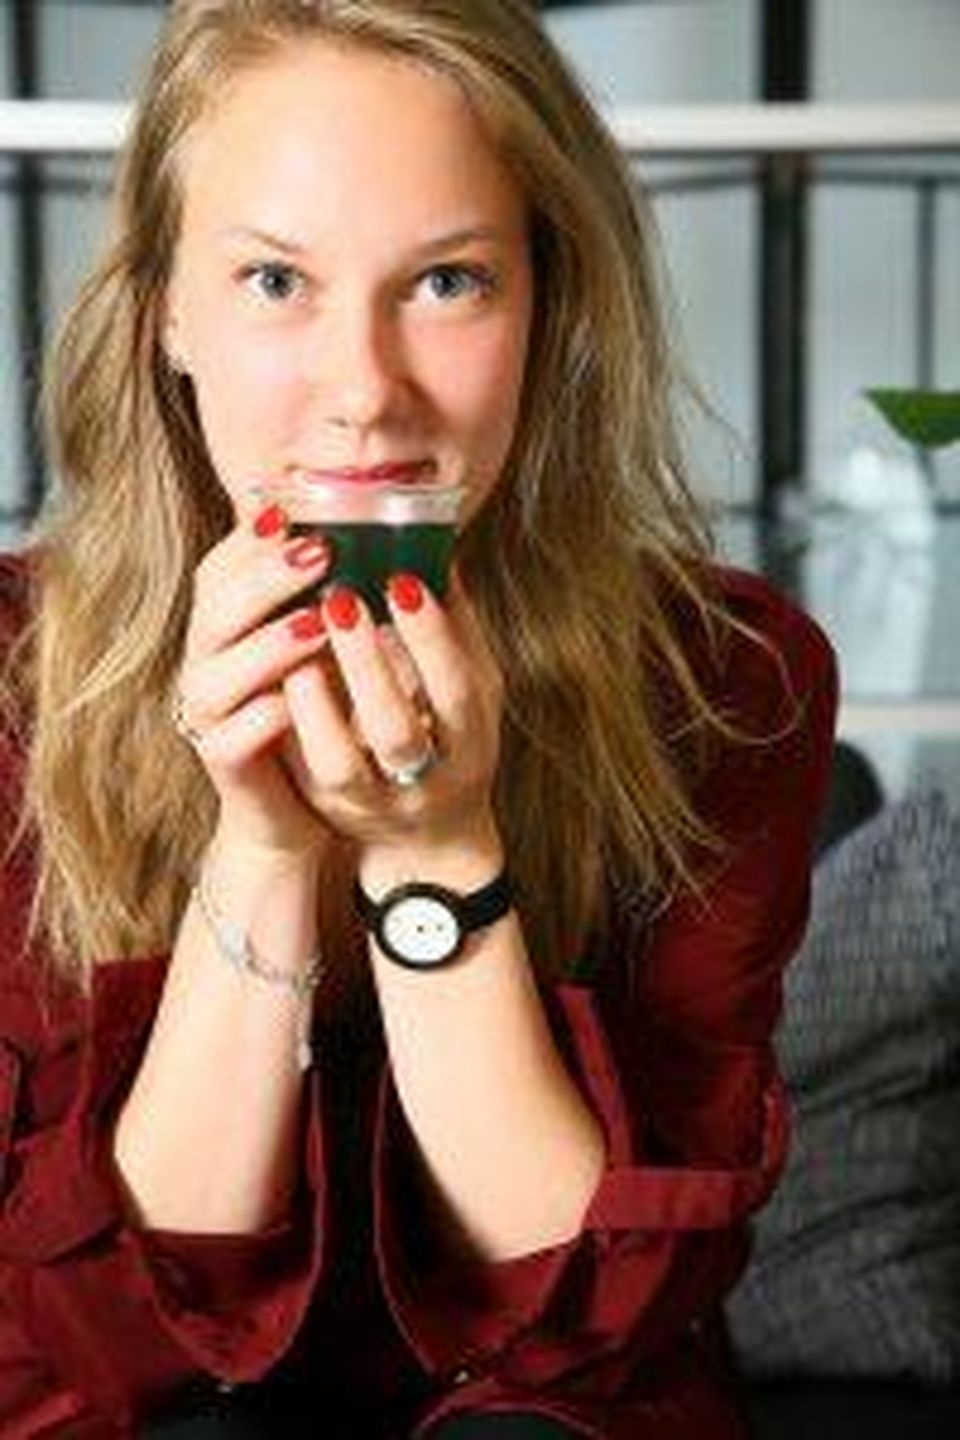 Mariliis Holm, co-founder, Nonfood a Los Angeles startup that's focused on creating food products... [+] from algae.